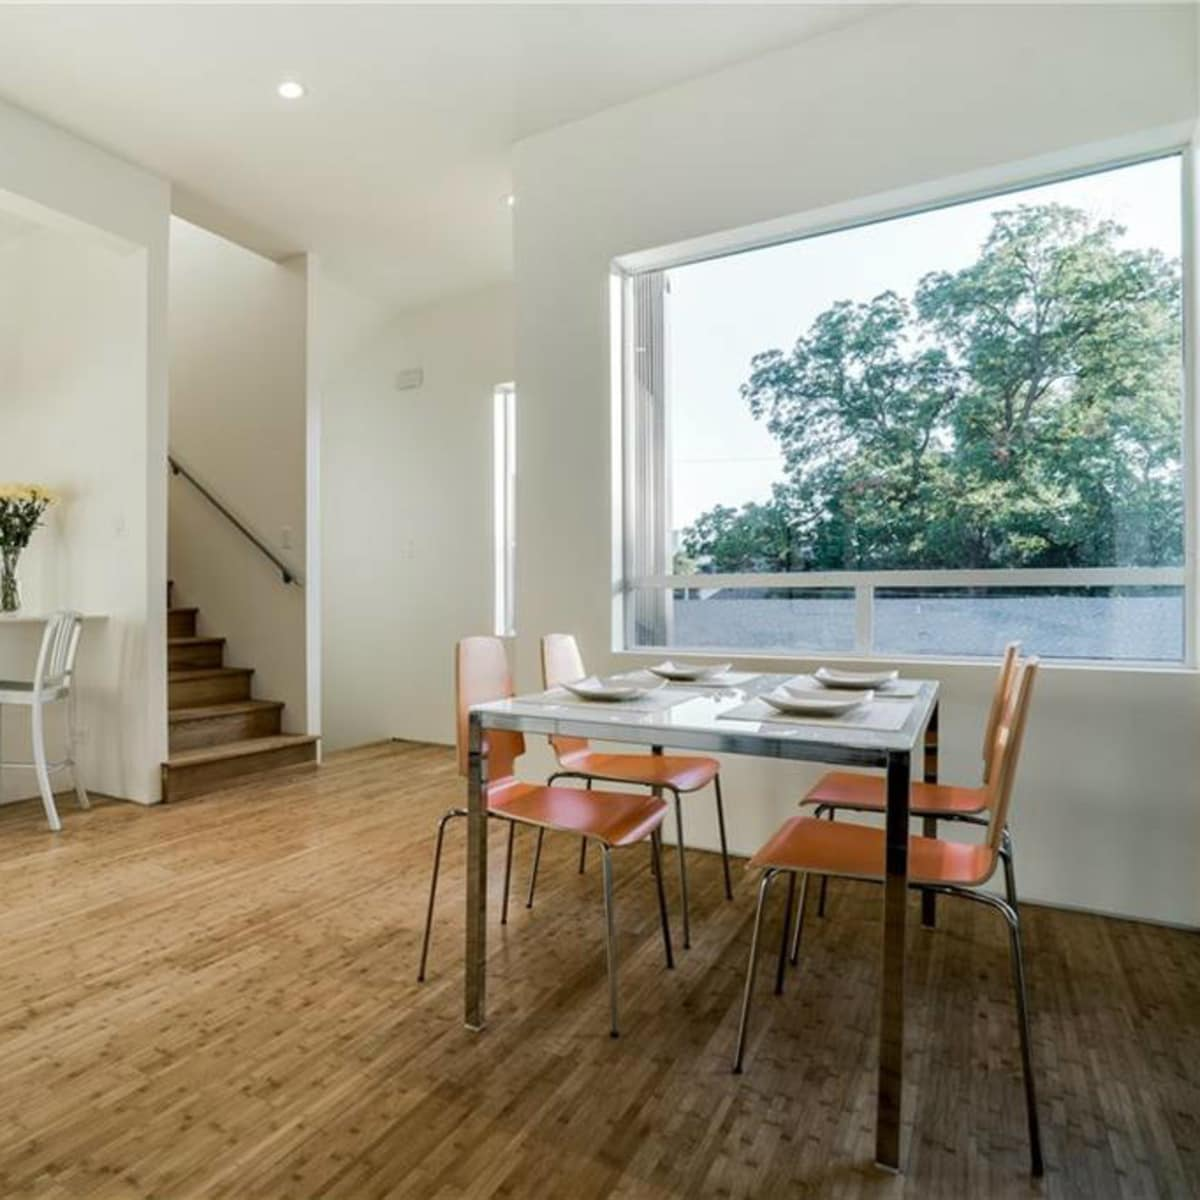 Kitchen and dining room at 4401 Roseland Ave. Unit B in Dallas